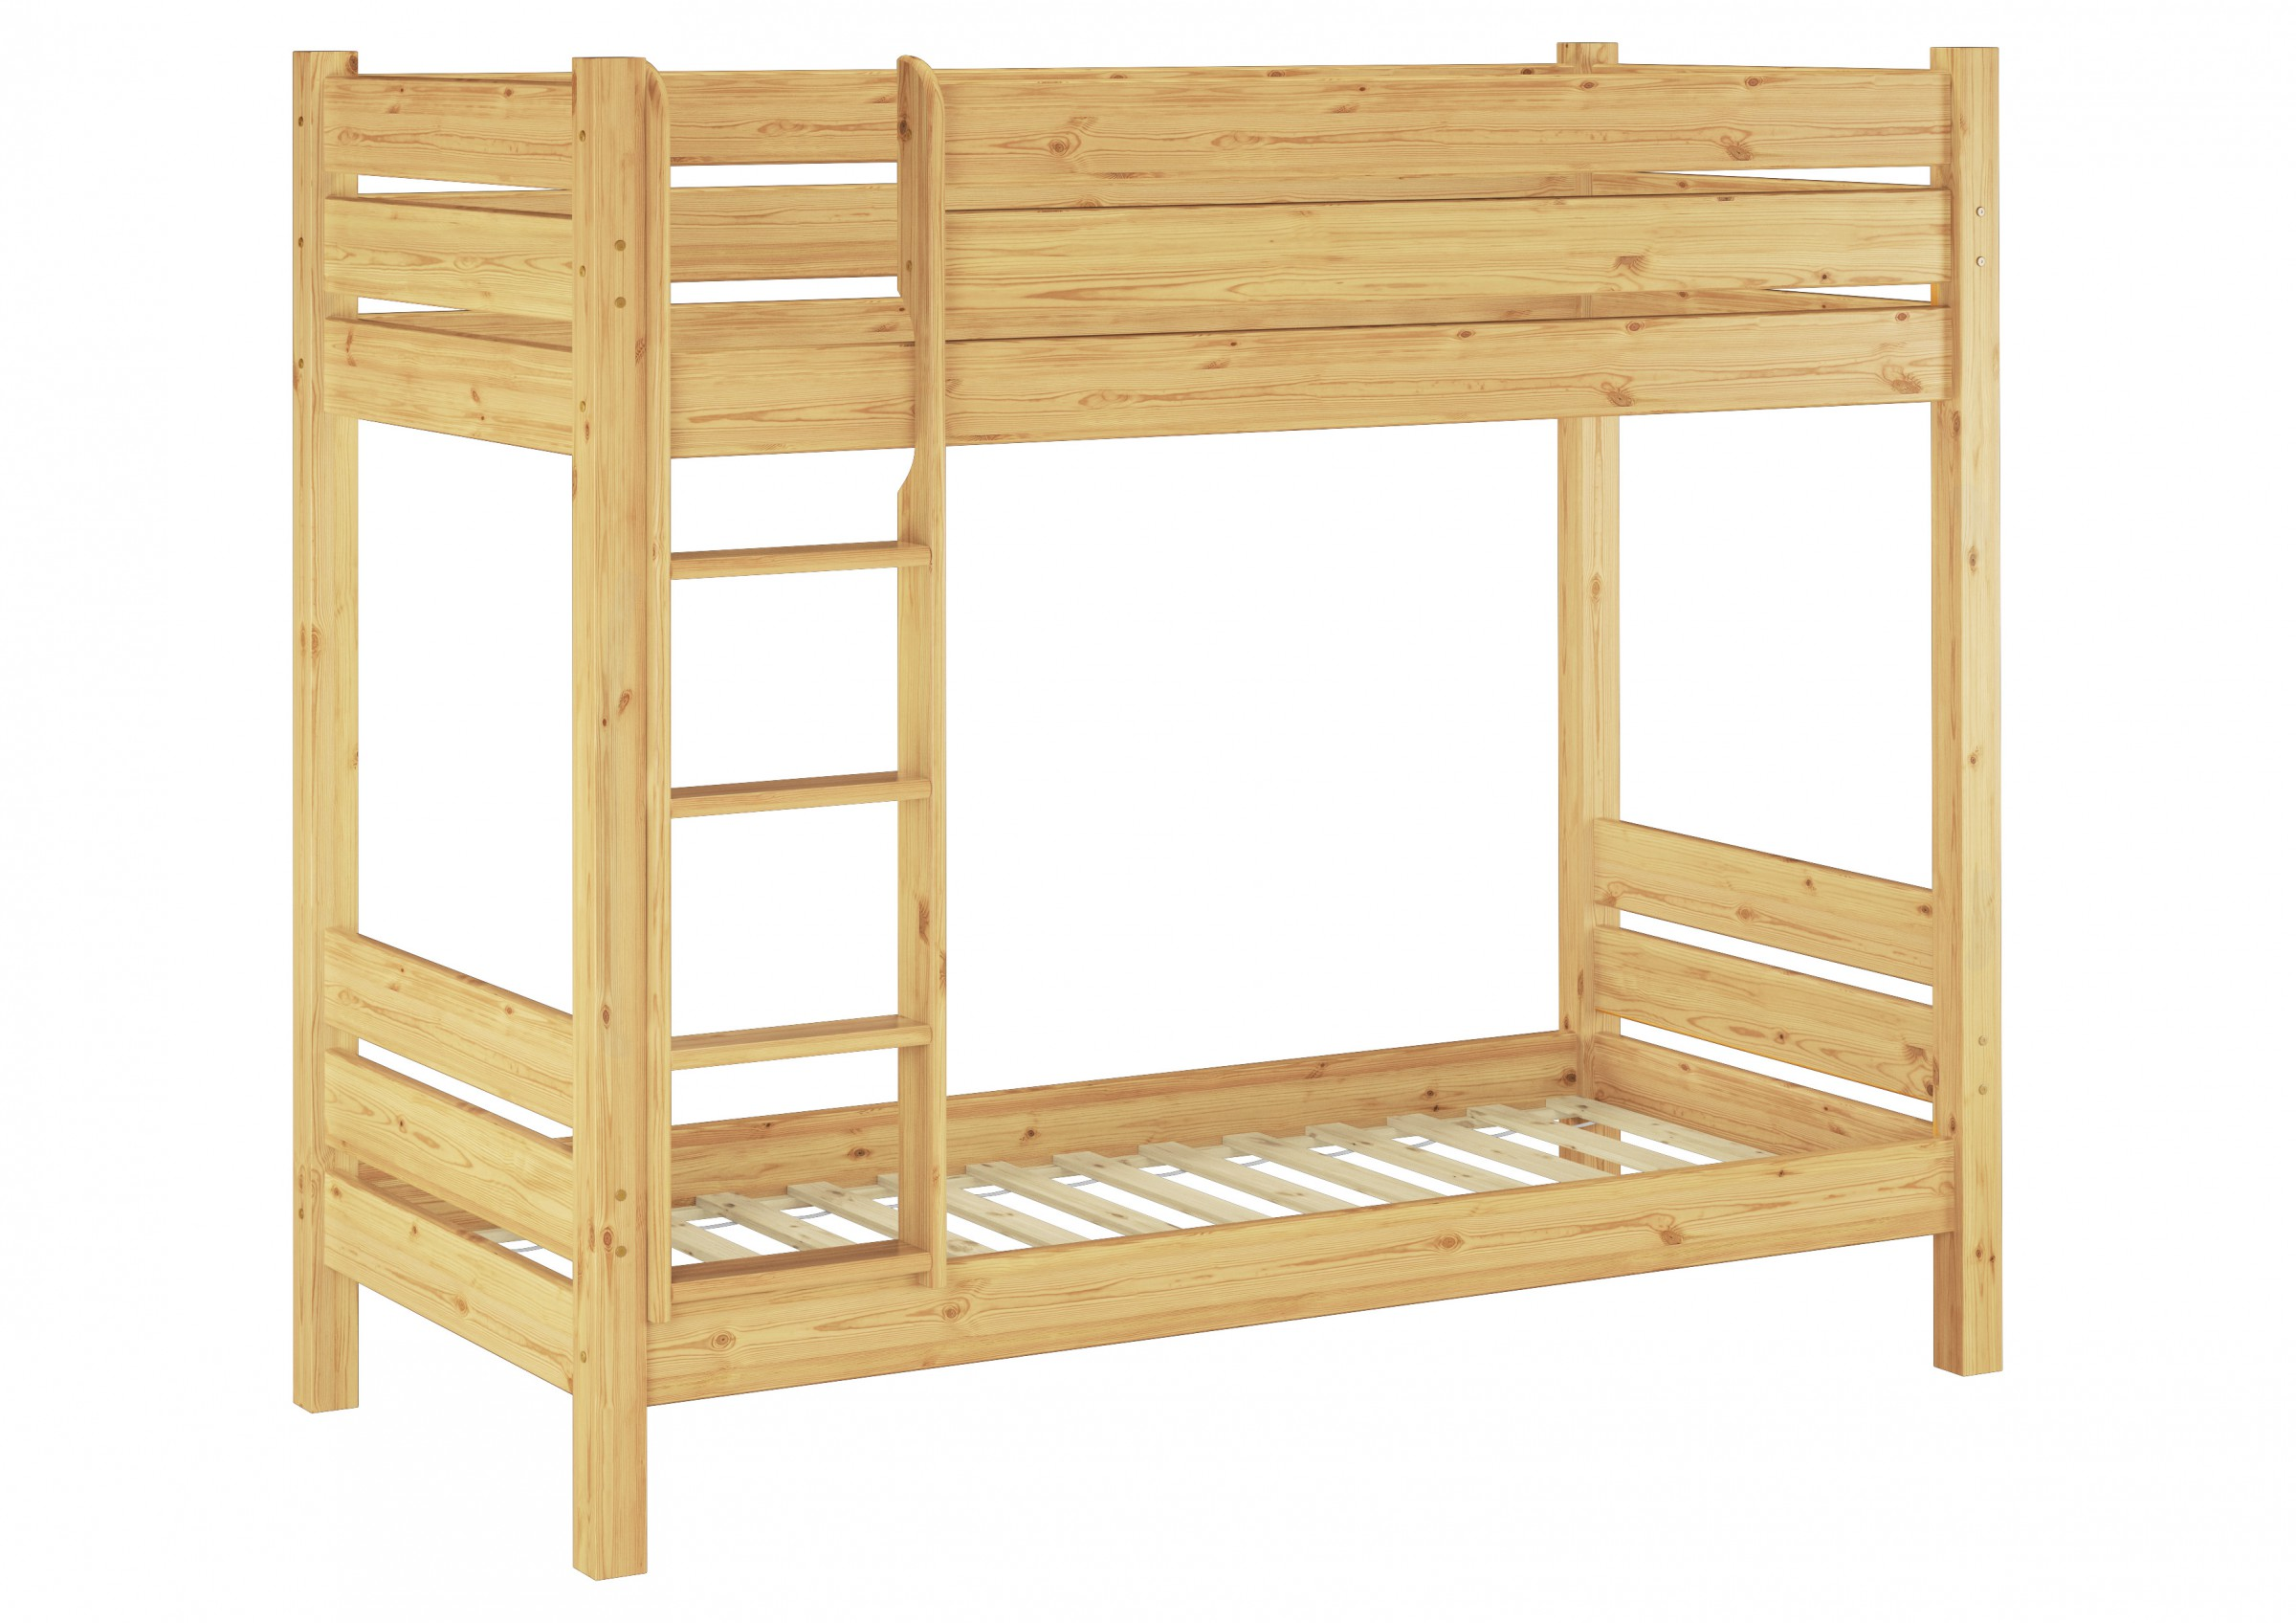 etagenbett hochbett stockbett doppelbett holz 80x220 extra stabil ebay. Black Bedroom Furniture Sets. Home Design Ideas